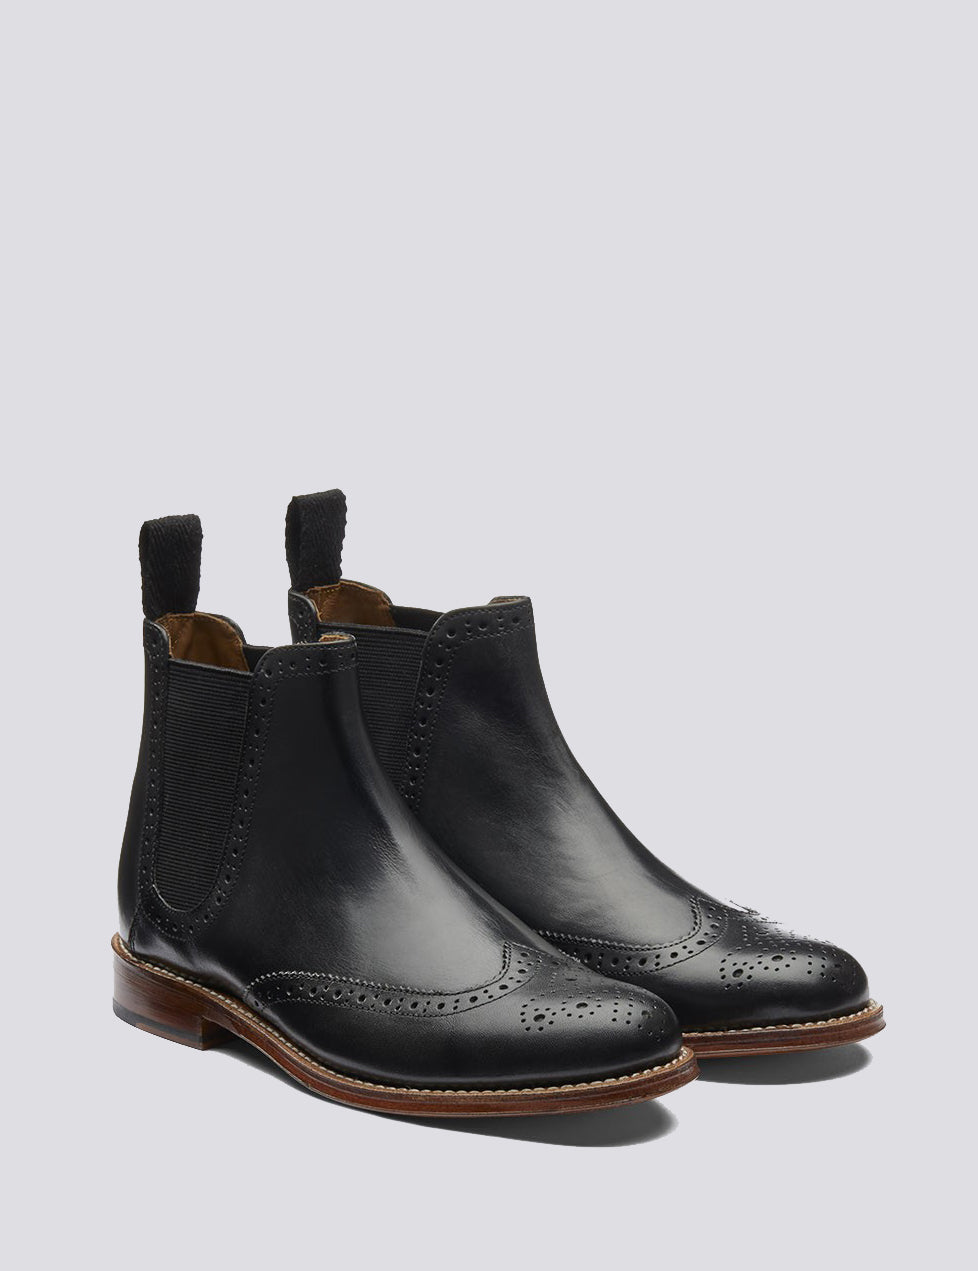 Womens Grenson Jessie Chelsea Boots (Leather) - Black | URBAN EXCESS.